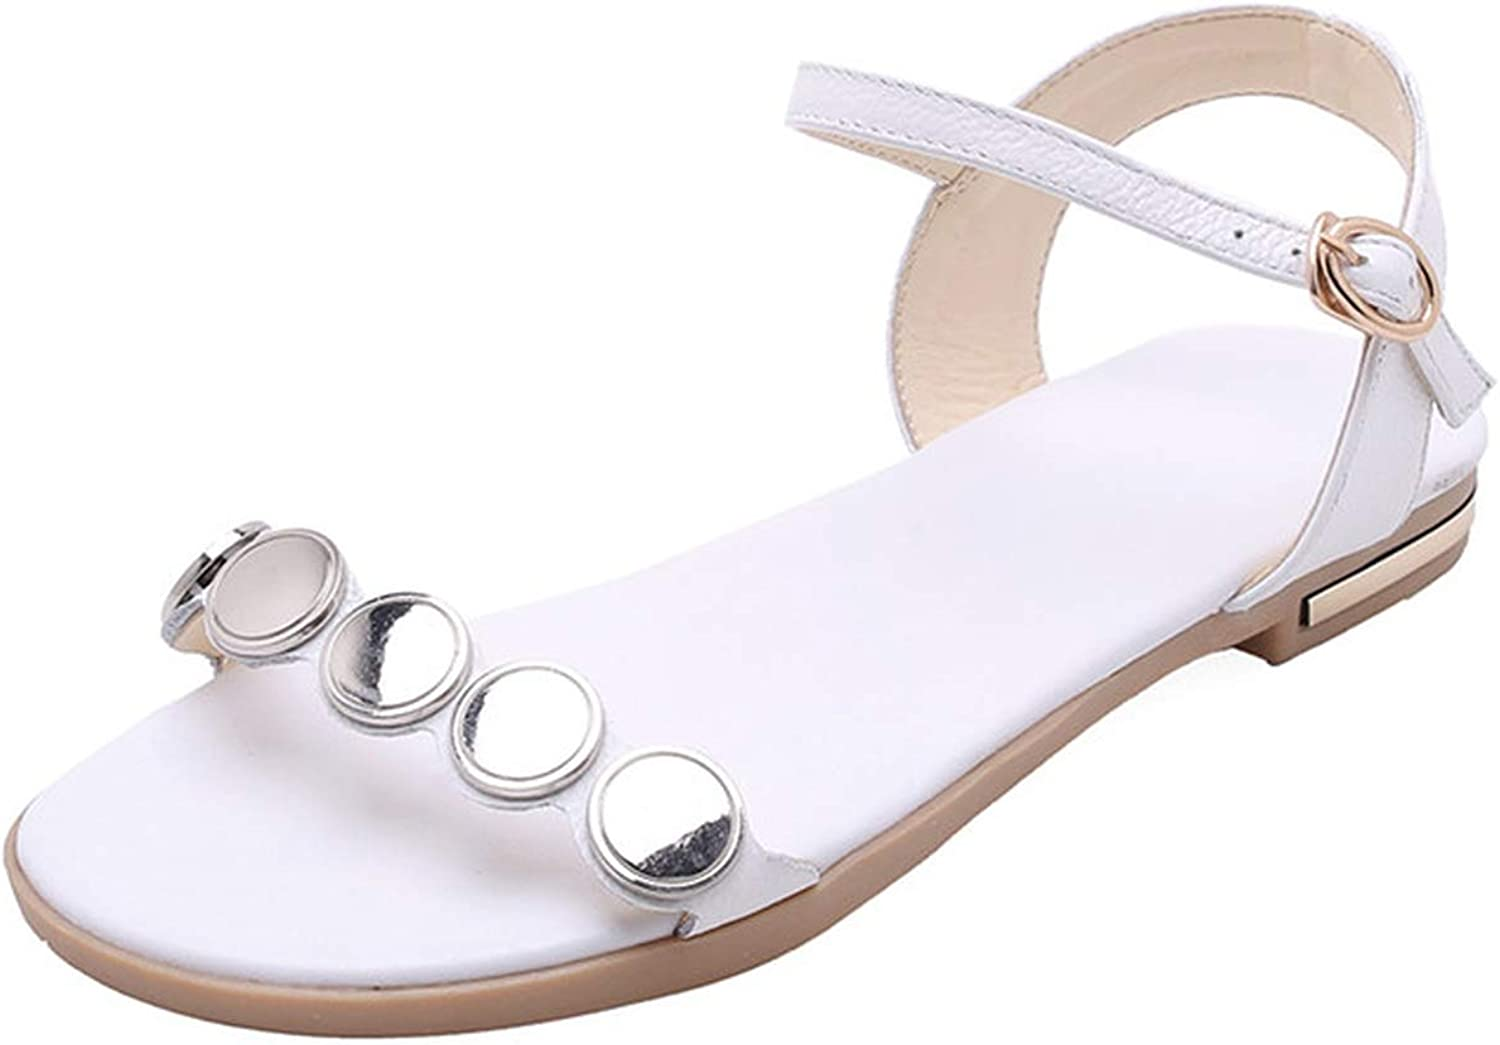 Fairy music Large Size 34-46 Summer New shoes Woman Buckle Genuine Leather shoes Women Flat with Sandals